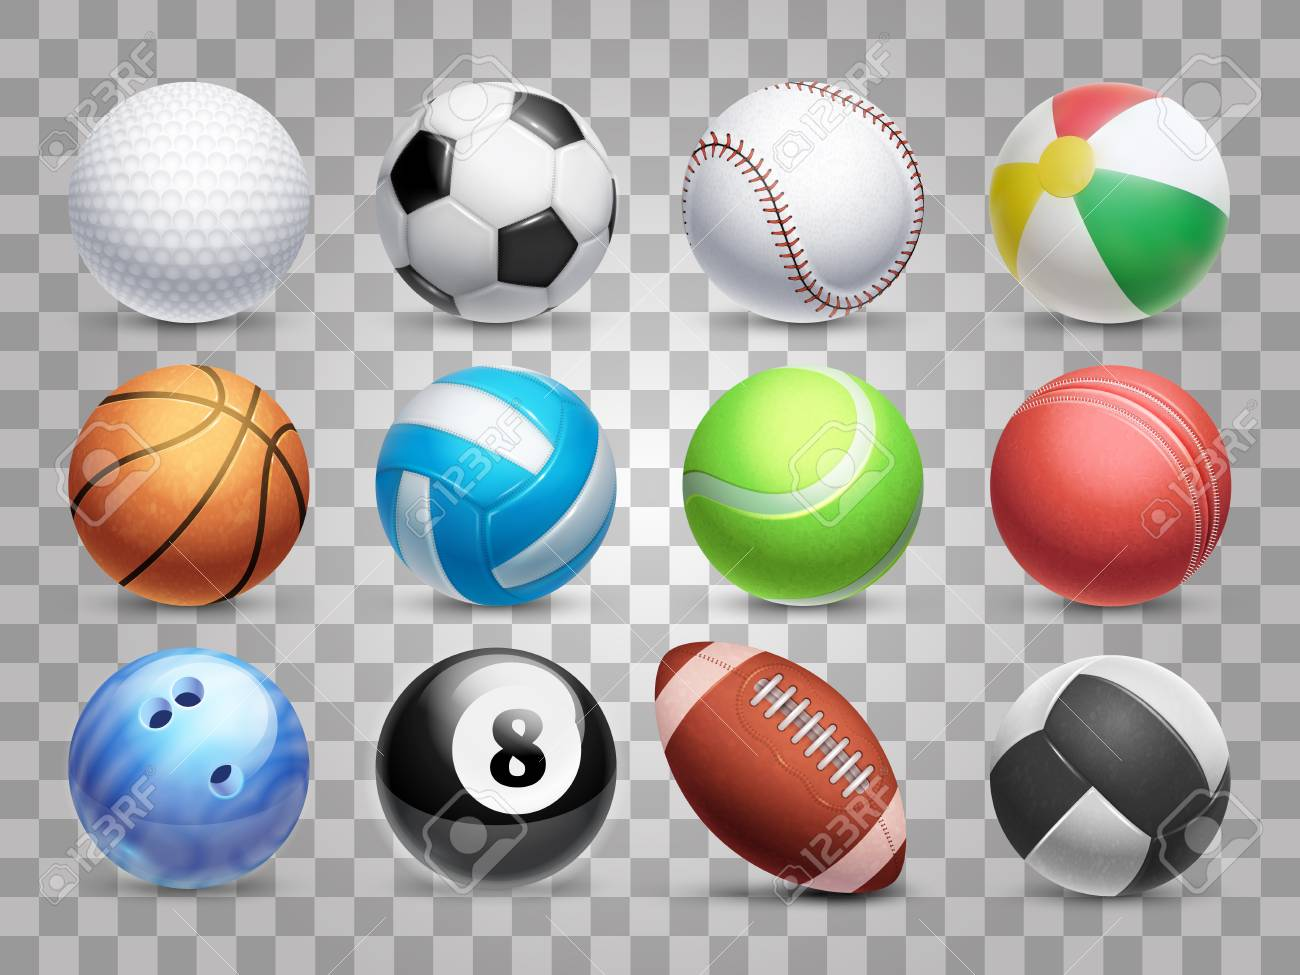 Realistic Sports Balls Vector Big Set Isolated On Transparent Royalty Free Cliparts Vectors And Stock Illustration Image 95308675